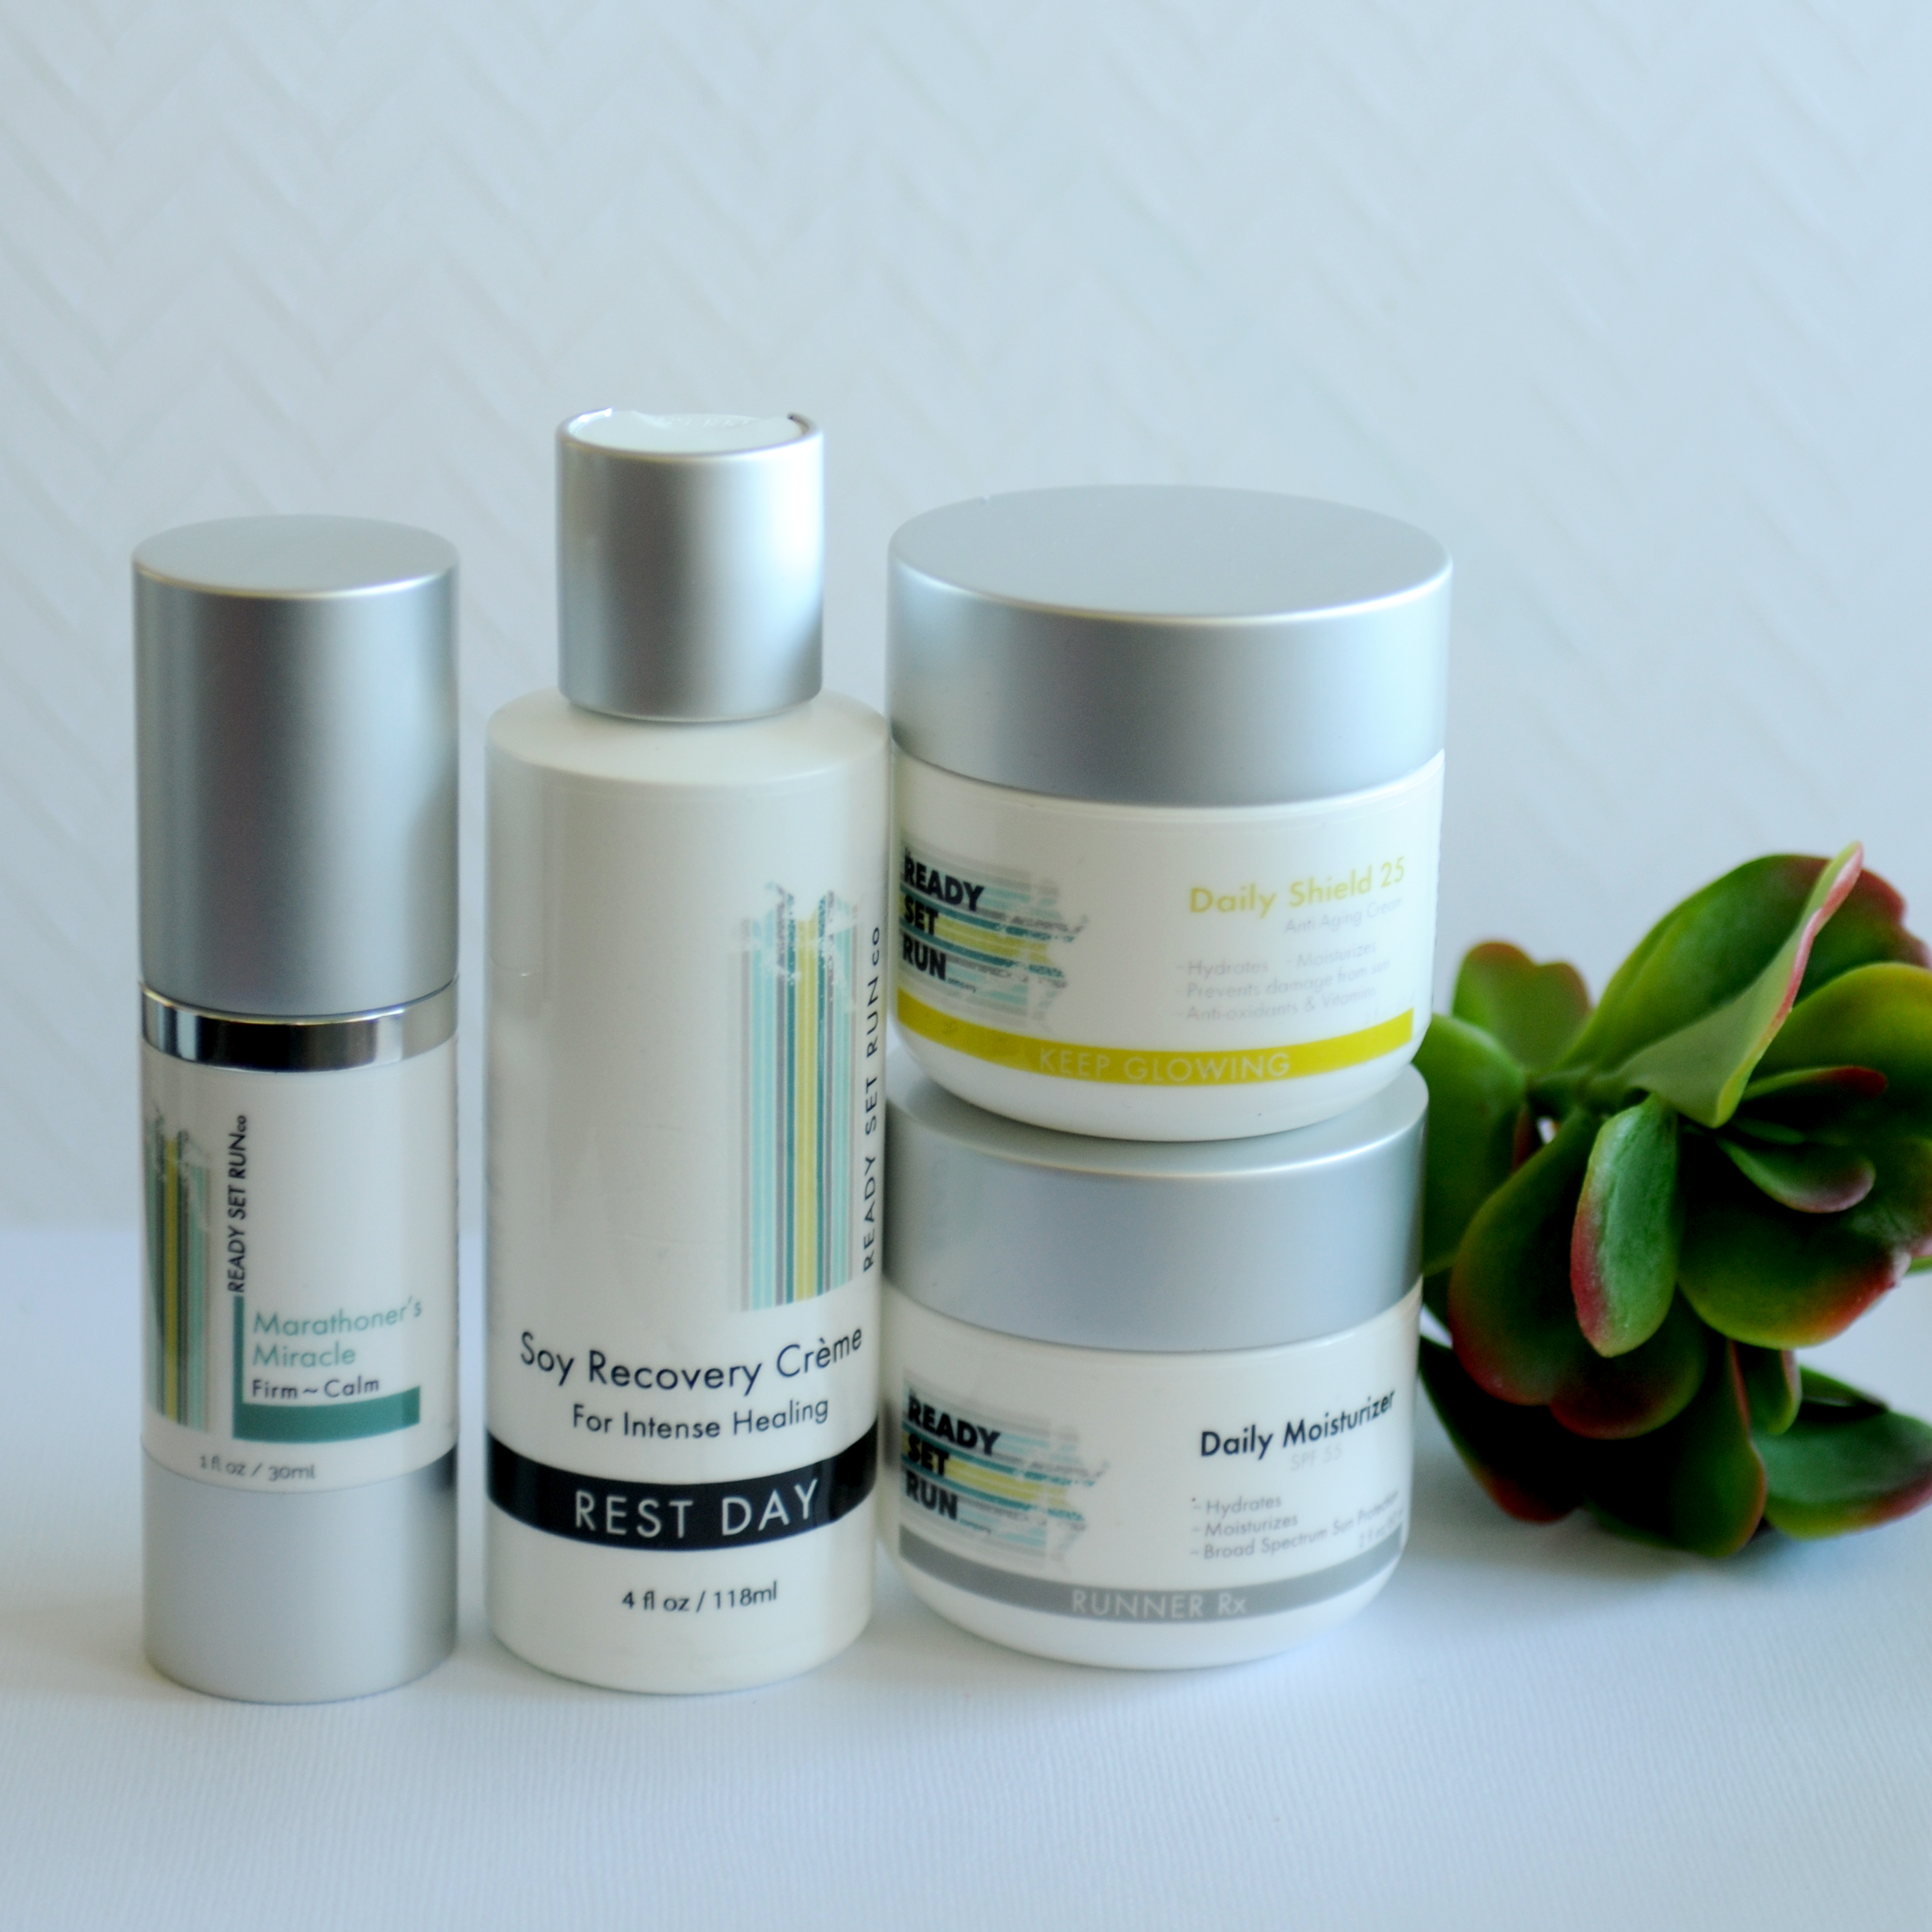 Ready Set Run Co | Premium Skincare for Runners